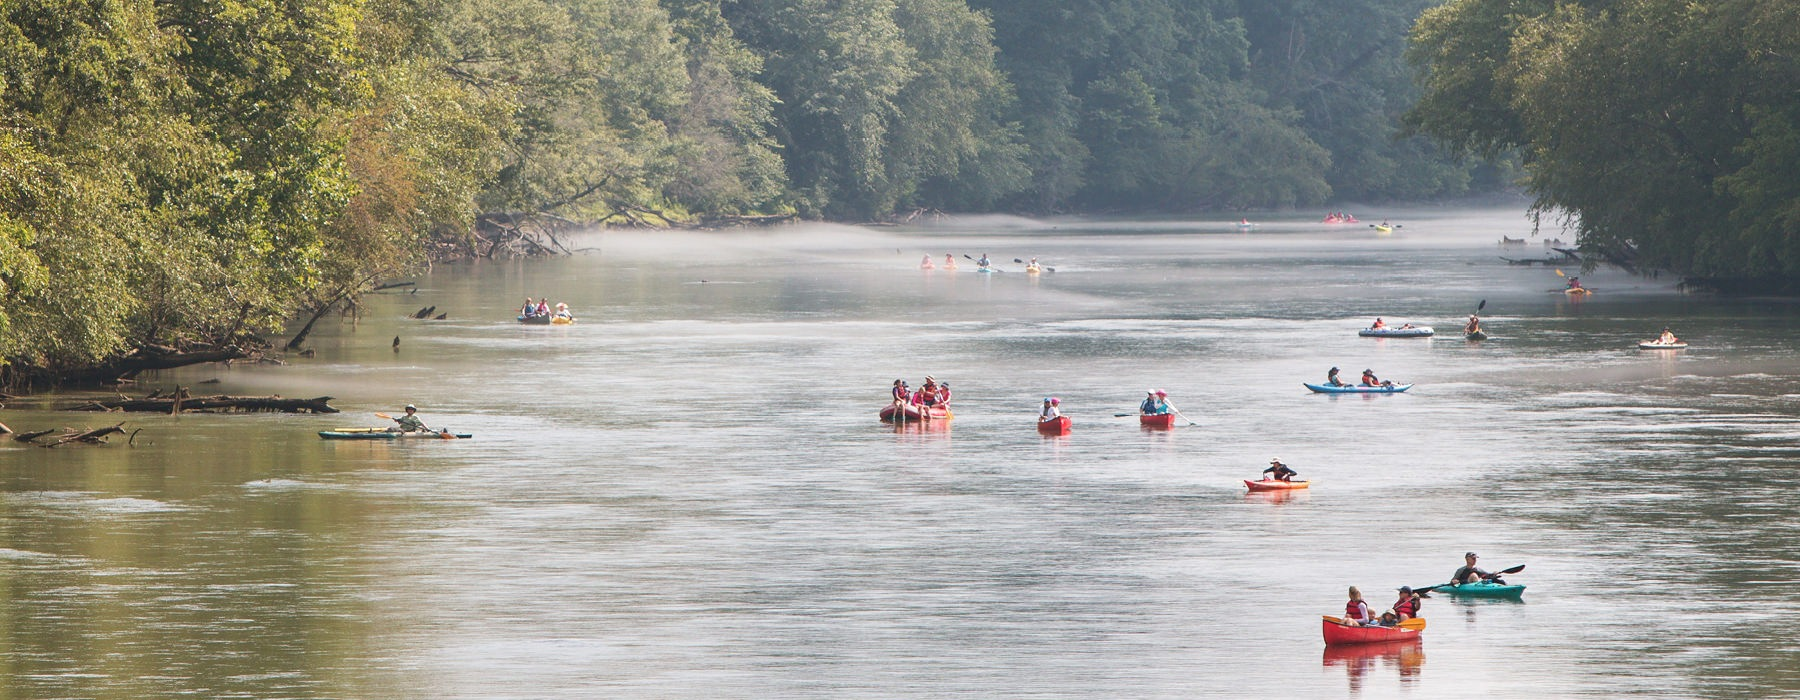 people boating and kayaking down the Chattahoochee River